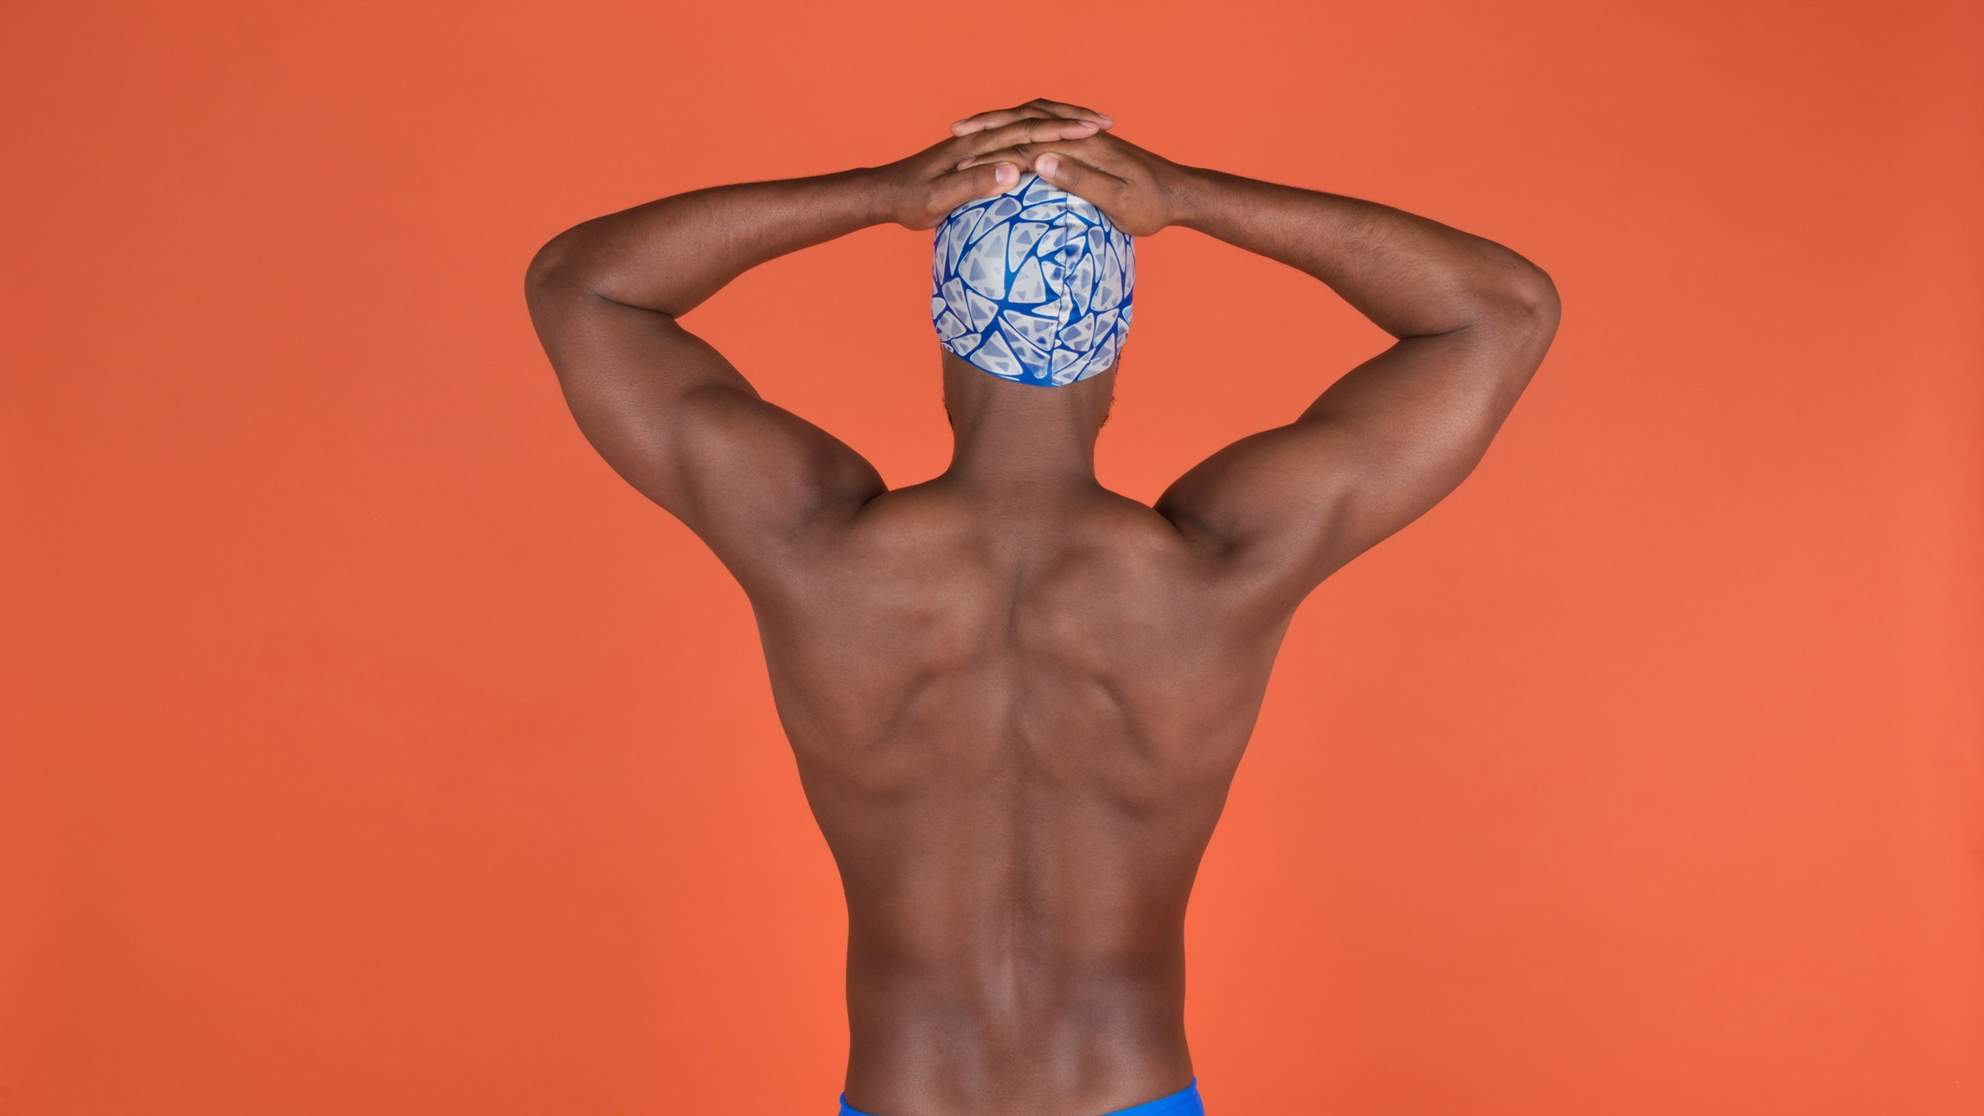 What Type of Exercise Is Best for the Brain?